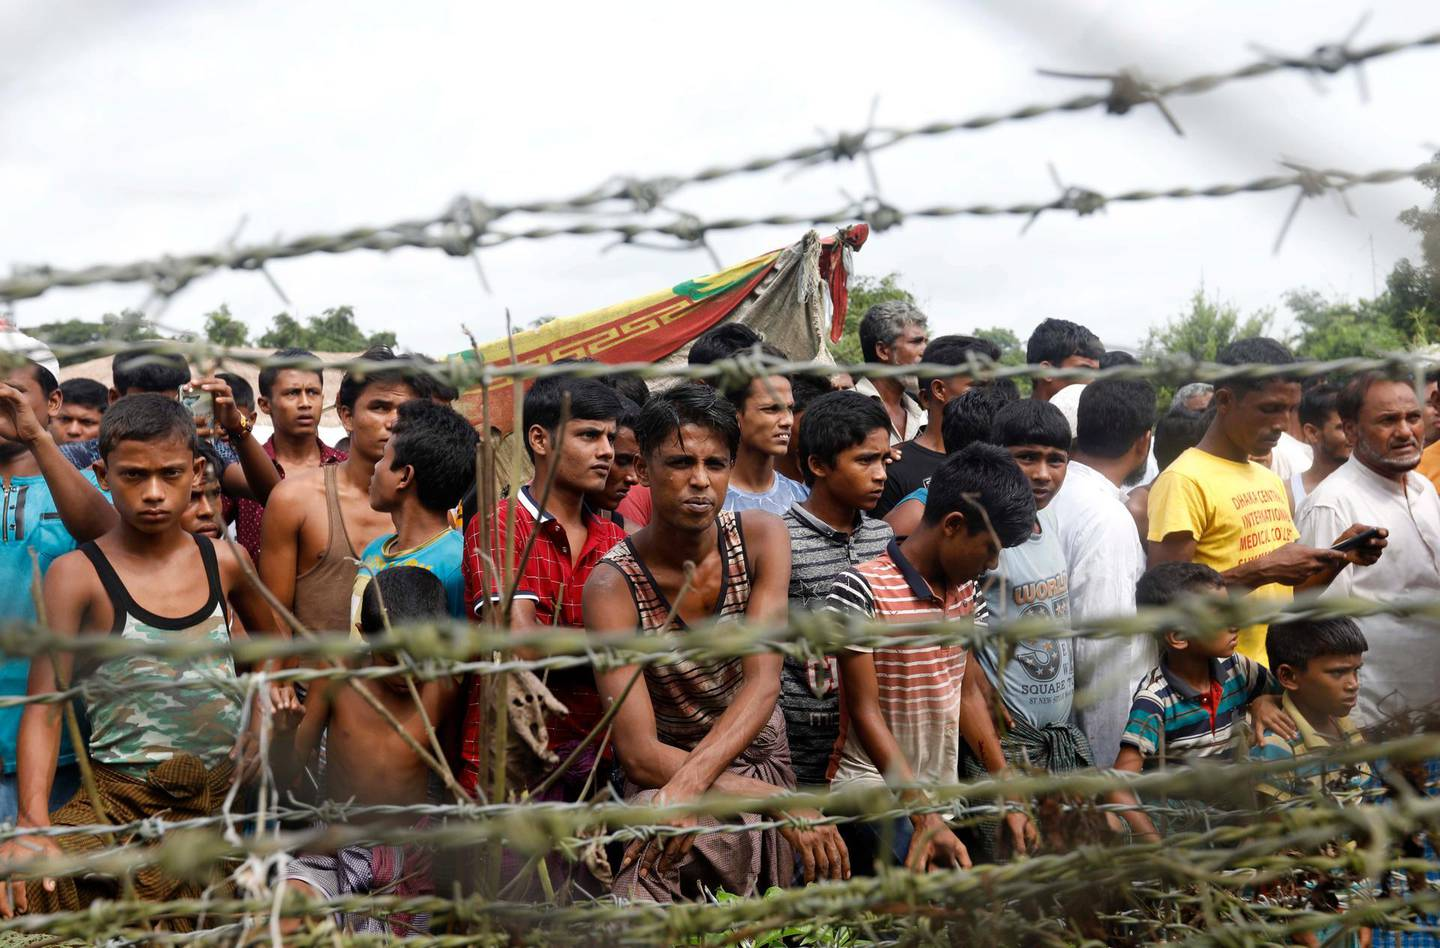 epa07031825 (FILE) - Rohingya refugees gather near a fence at the 'no man's land' zone at the Bangladesh-Myanmar border in Maungdaw district, Rakhine State, western Myanmar, 24 August 2018 (reissued 19 September 2018). Chief Prosecutor of the International Criminal Court (ICC), Fatou Bensouda released a statement on 18 September 2018, announcing the opening of a preliminary examination into Myanmar's alleged deportation of Rohingya people from Myanmar to Bangladesh, as well as other potential crimes. The preliminary examination will determine whether there is enough evidence to proceed with a full investigation. Since Myanmar is not an ICC state party, but Bangladesh is, the court 'may exercise jurisdiction over conduct to the extent it partly occurred on the territory of Bangladesh,' she said. A UN independent mission on Myanmar released a report on 18 September 2018, examining the situation in three Myanmar states over 15 months, making recommendations to the UN, the international community and to the Myanmar Government to investigate and prosecute the country's military leaders for 'genocide, crimes against humanity and war crimes.' Thousands of Rohingya people fled the violence in Myanmar since August 2017, to find refuge in neighboring Bangladesh.  EPA/NYEIN CHAN NAING *** Local Caption *** 54573514